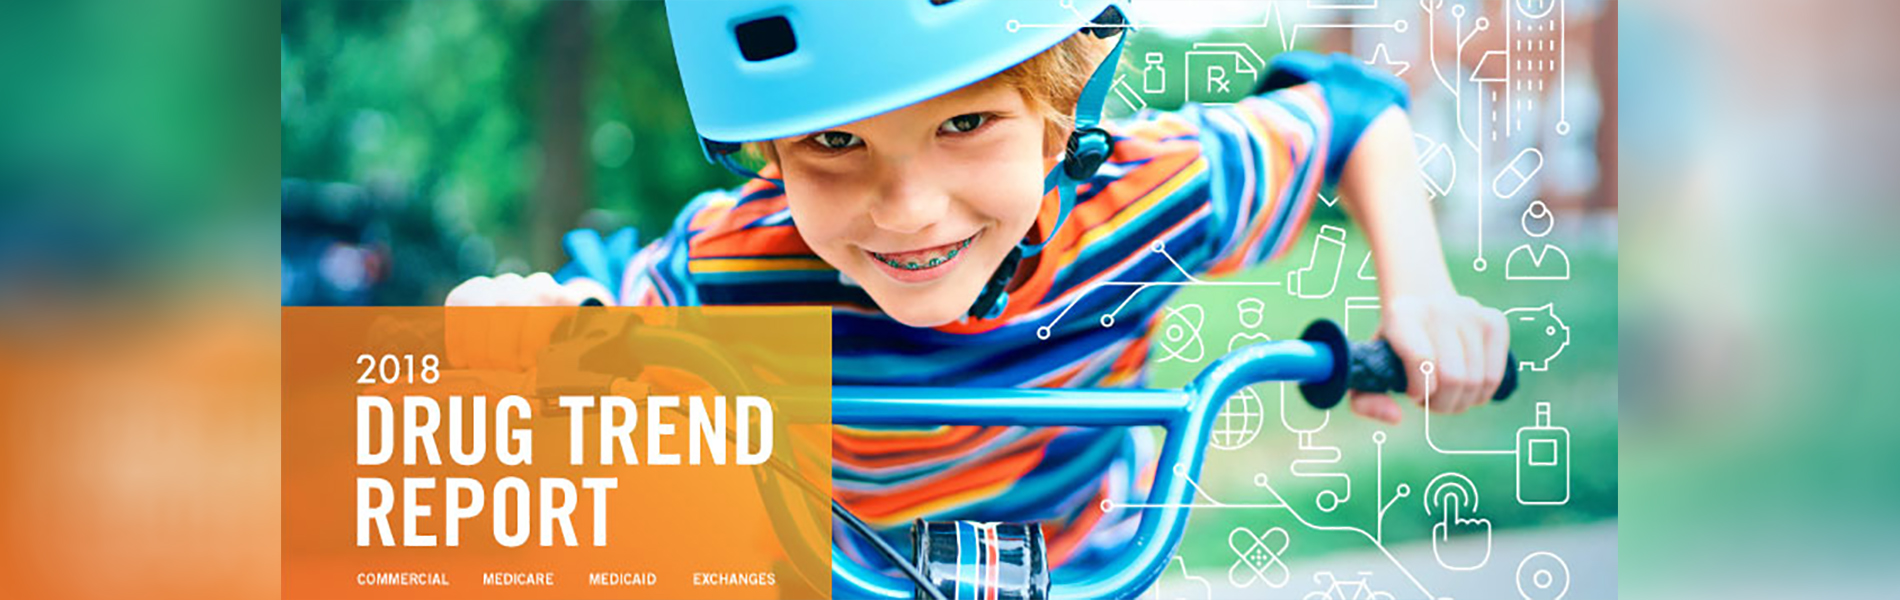 Banner Image of a young boy on a bicycle